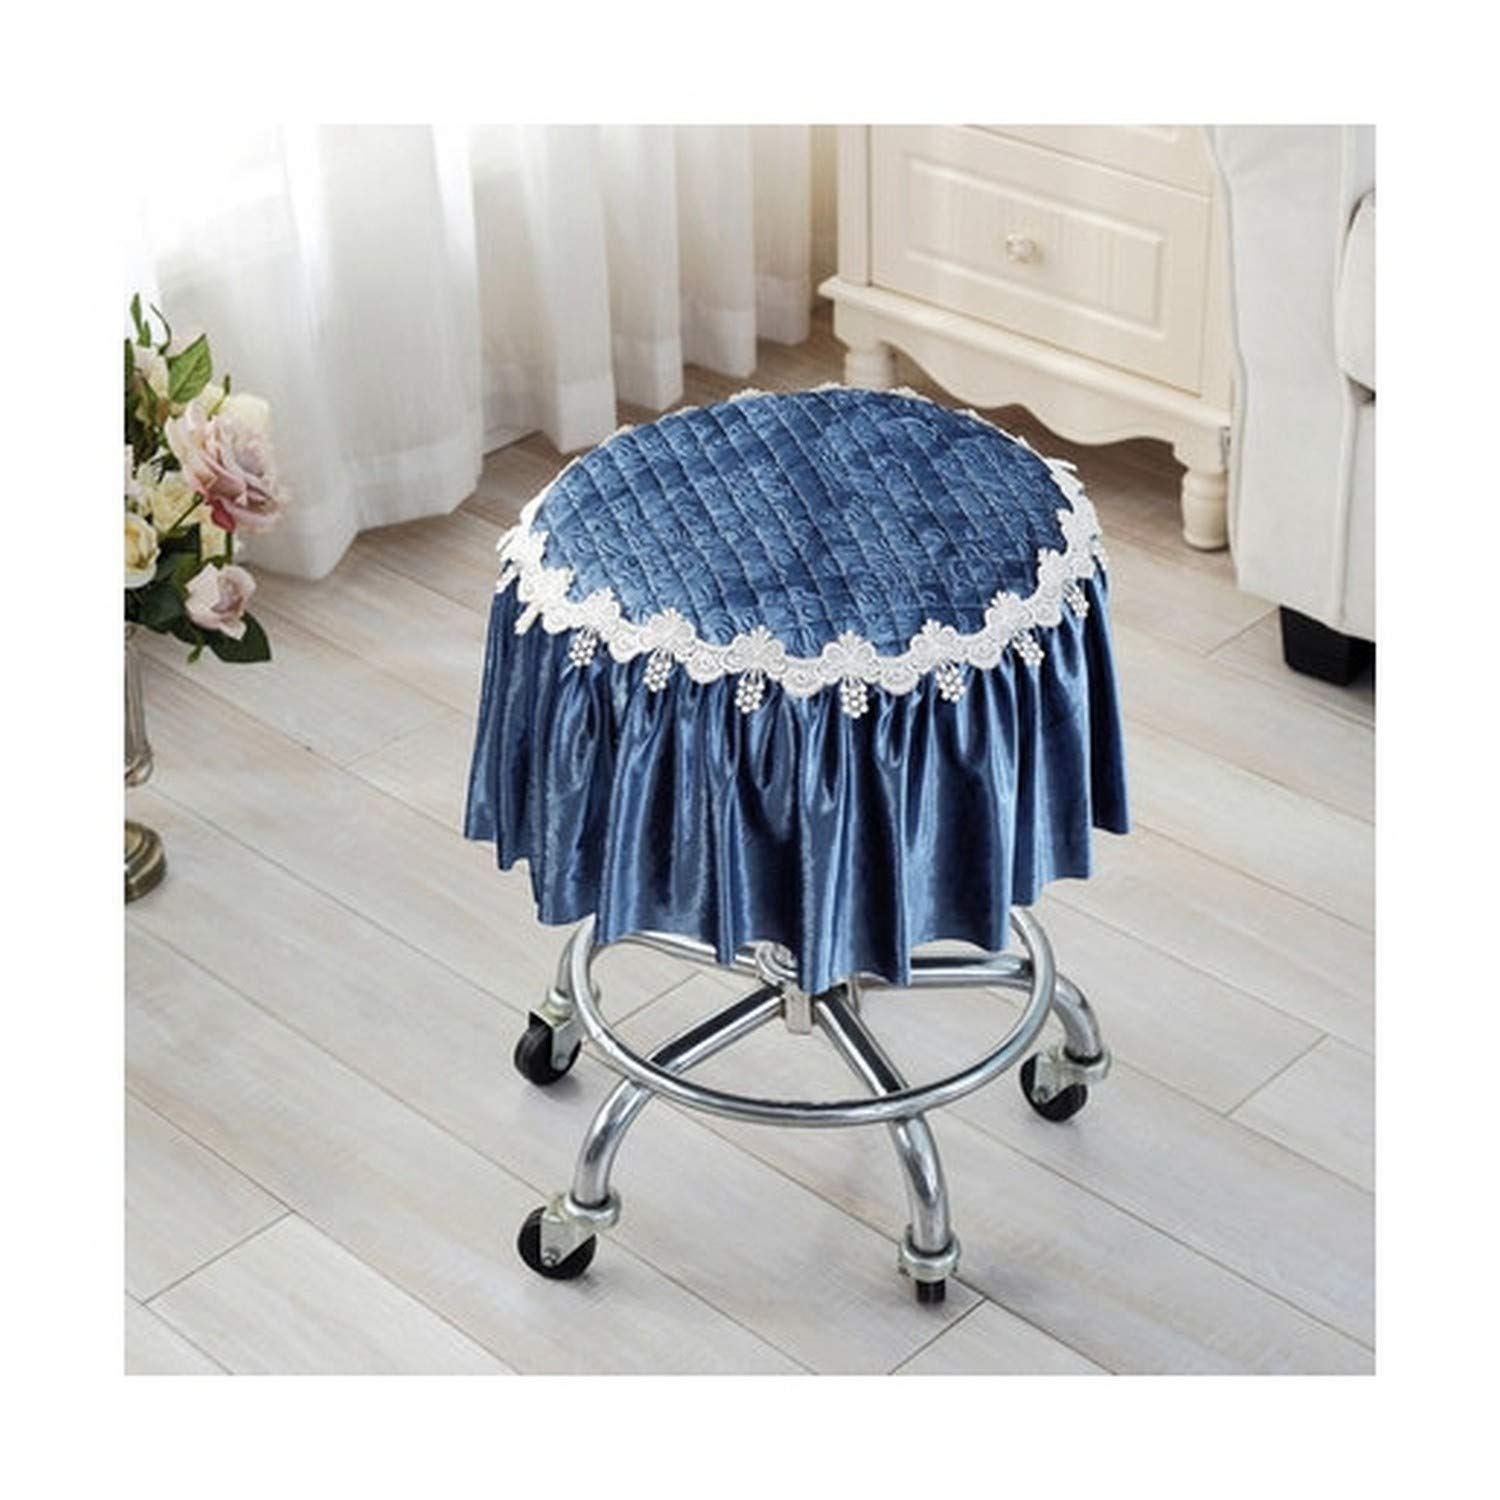 Michael Palmer Thickening Bar Stool Cover Round Chair Seat Slipcovers Pad, 30-45CM Soft Chair Covers Protectors by Michael Palmer